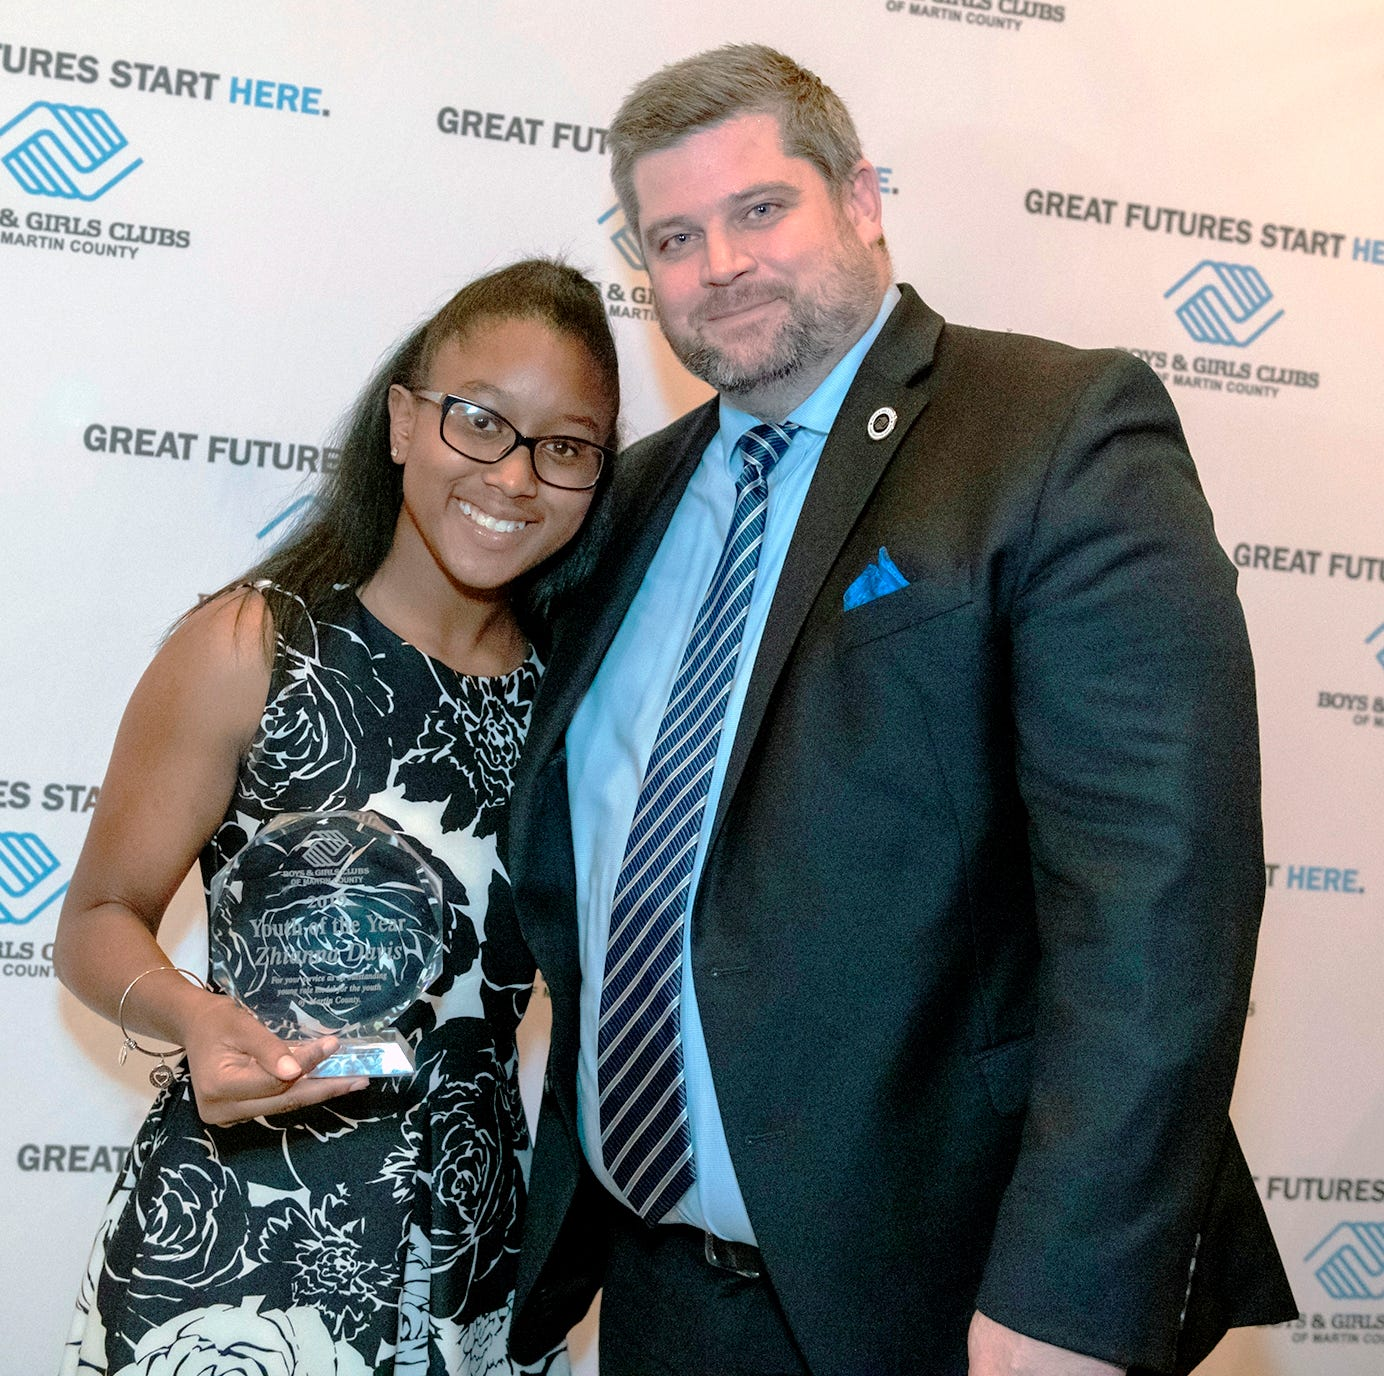 17-year-old South Fork High School student named 2019 Youth of Year by Boys & Girls Clubs of Martin County